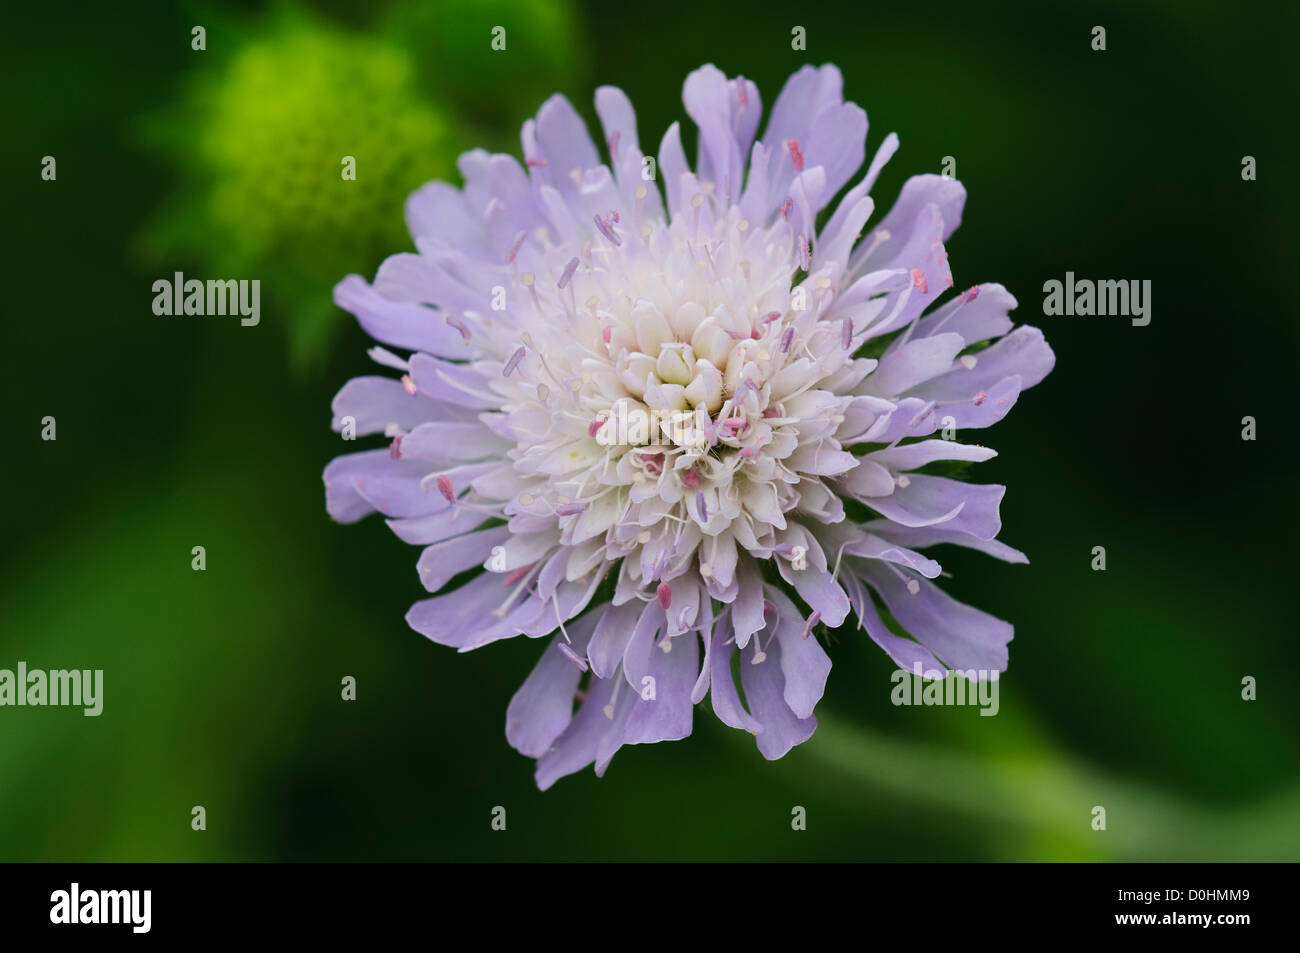 A small scabious flower (Scabiosa columbaria) blooming at Crossness Nature Reserve, Bexley, Kent. june. - Stock Image